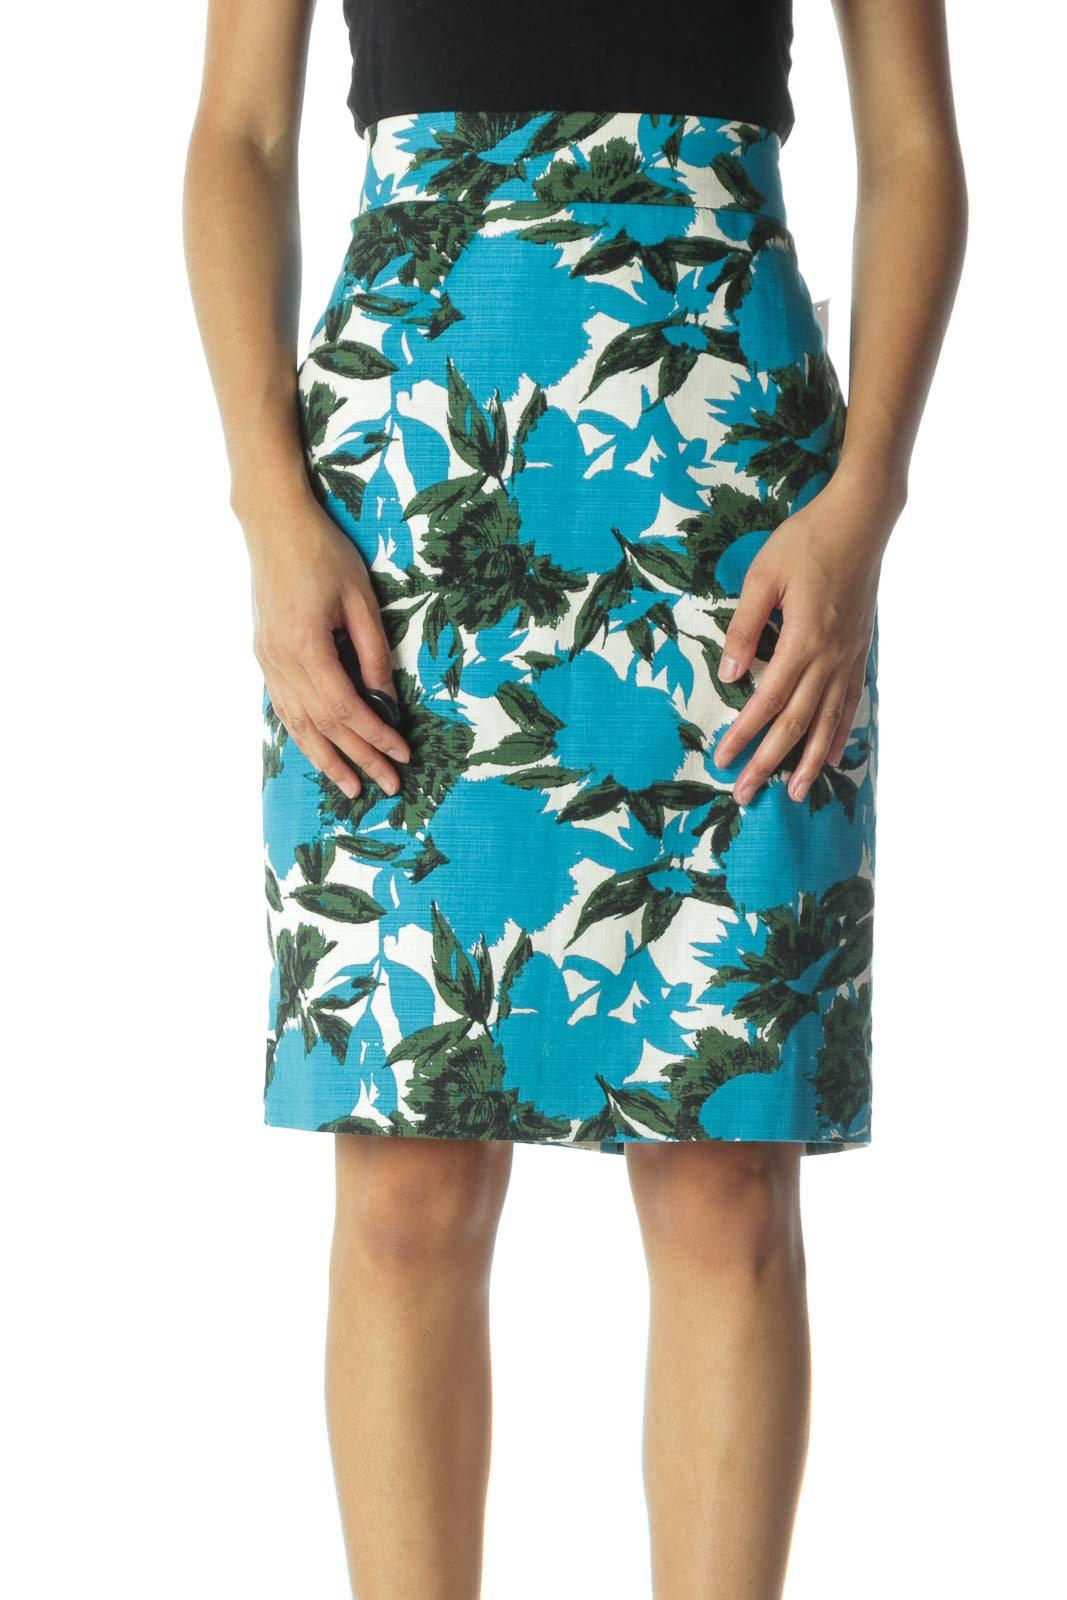 Green and Teal Floral Print Pencil Skirt